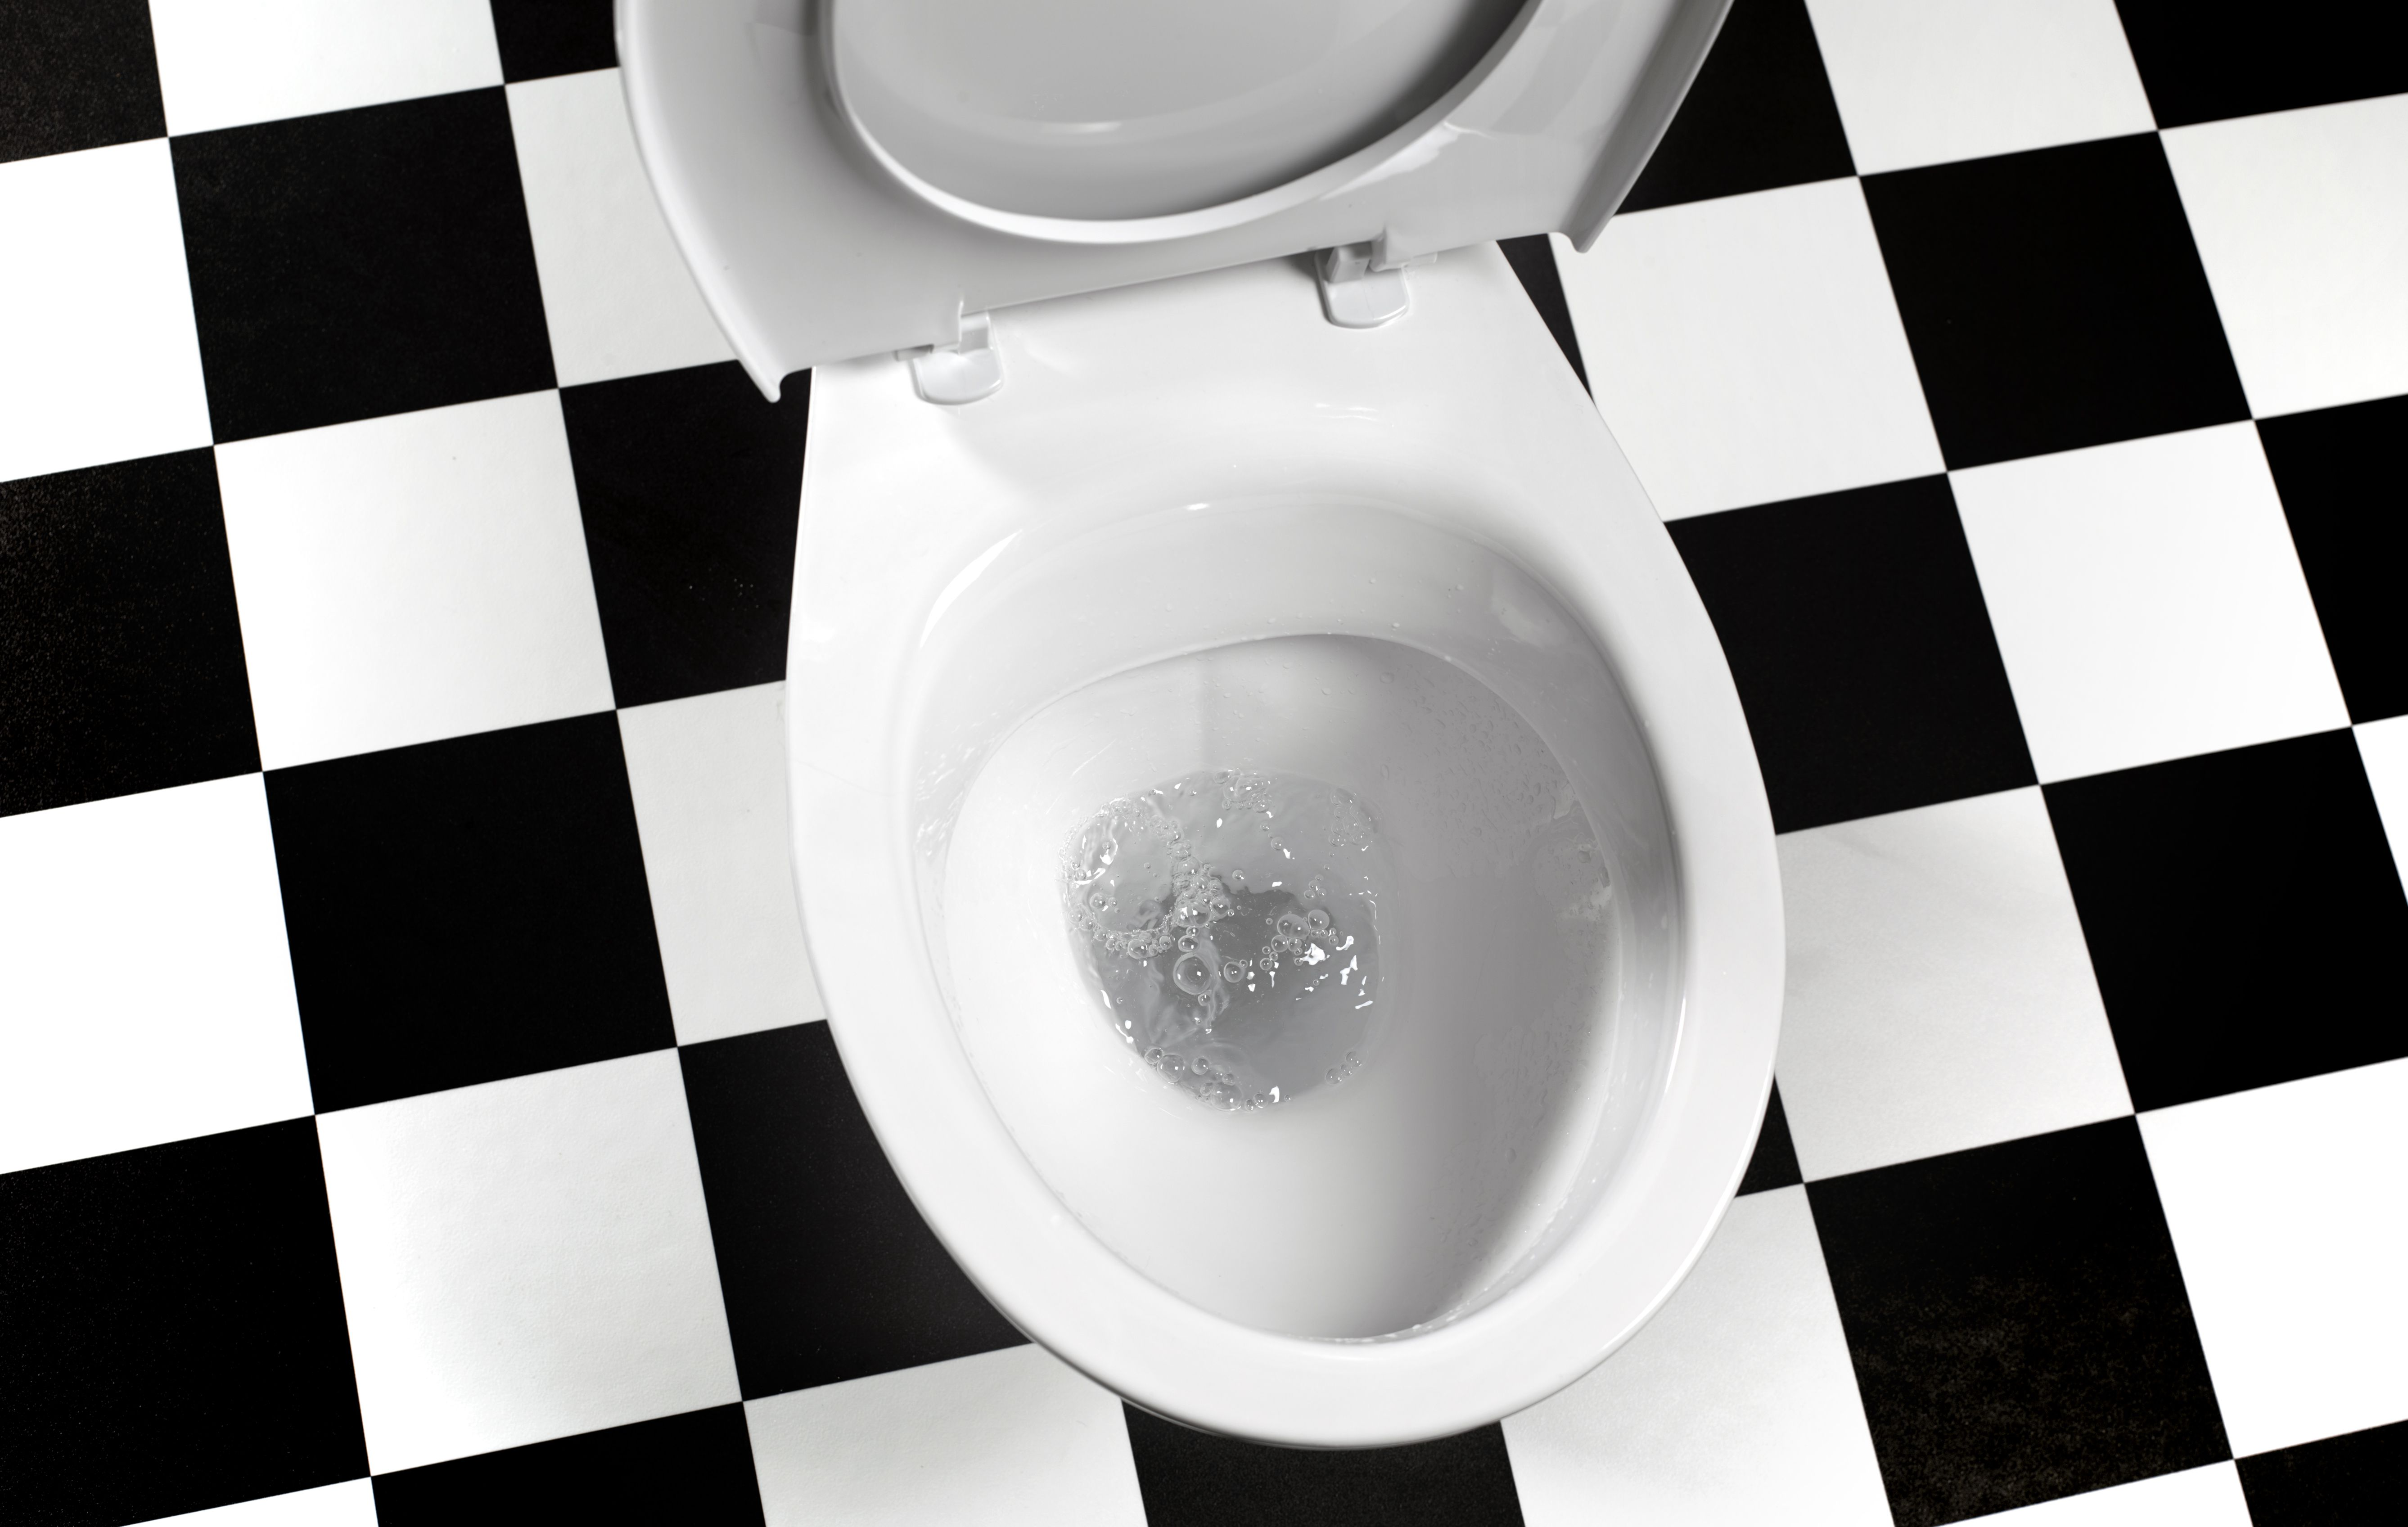 toilet bowl flapper replacement. How to Stop a Running Toilet Replace Flapper